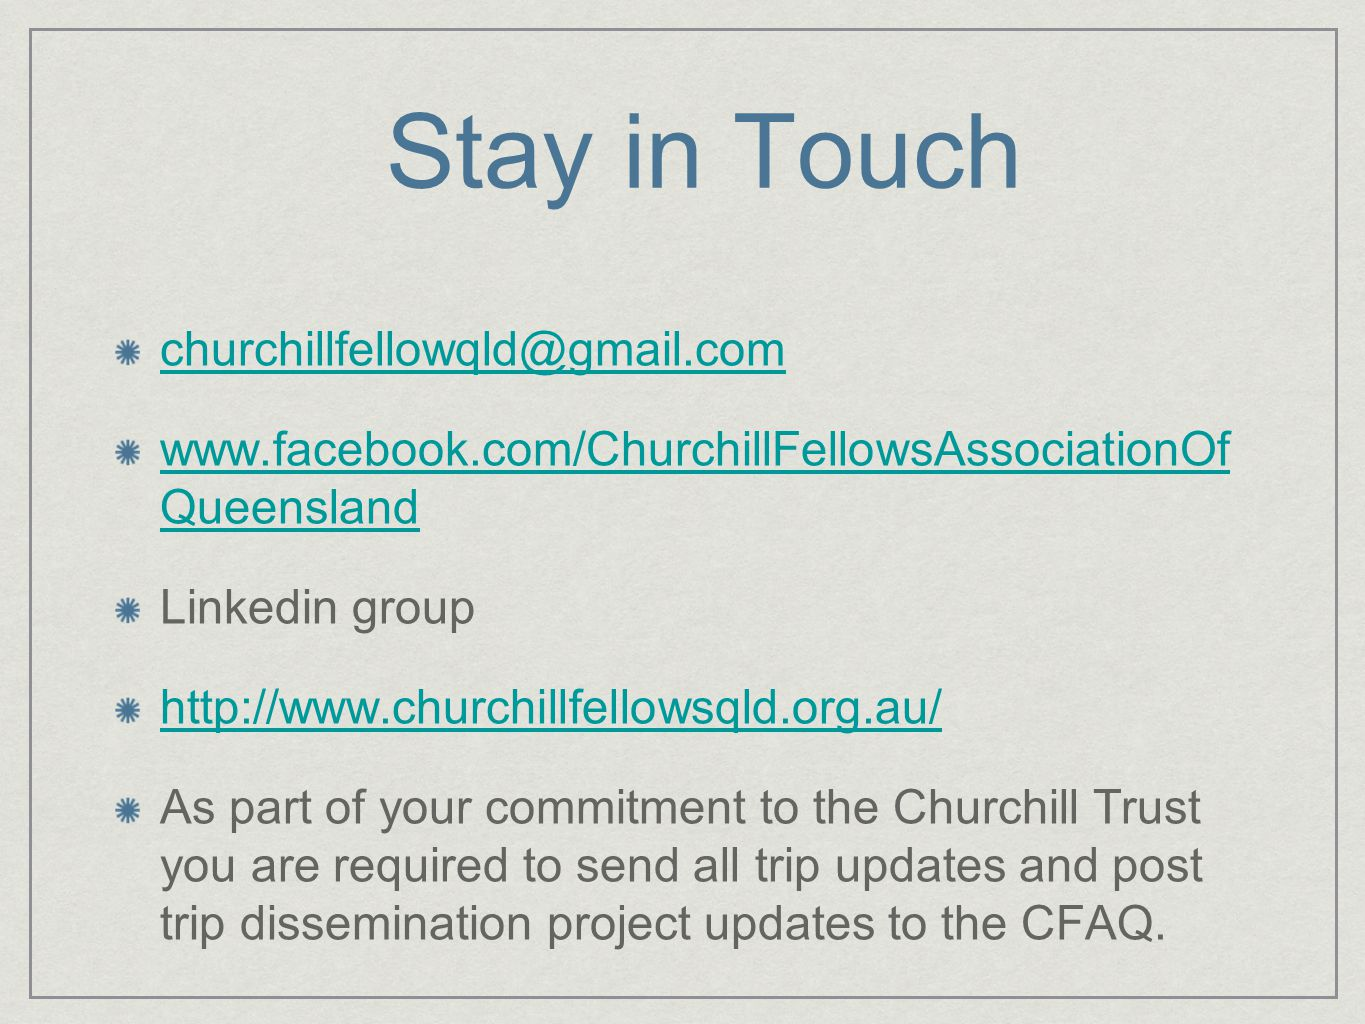 Stay in Touch churchillfellowqld@gmail.com www.facebook.com/ChurchillFellowsAssociationOf Queensland Linkedin group http://www.churchillfellowsqld.org.au/ As part of your commitment to the Churchill Trust you are required to send all trip updates and post trip dissemination project updates to the CFAQ.